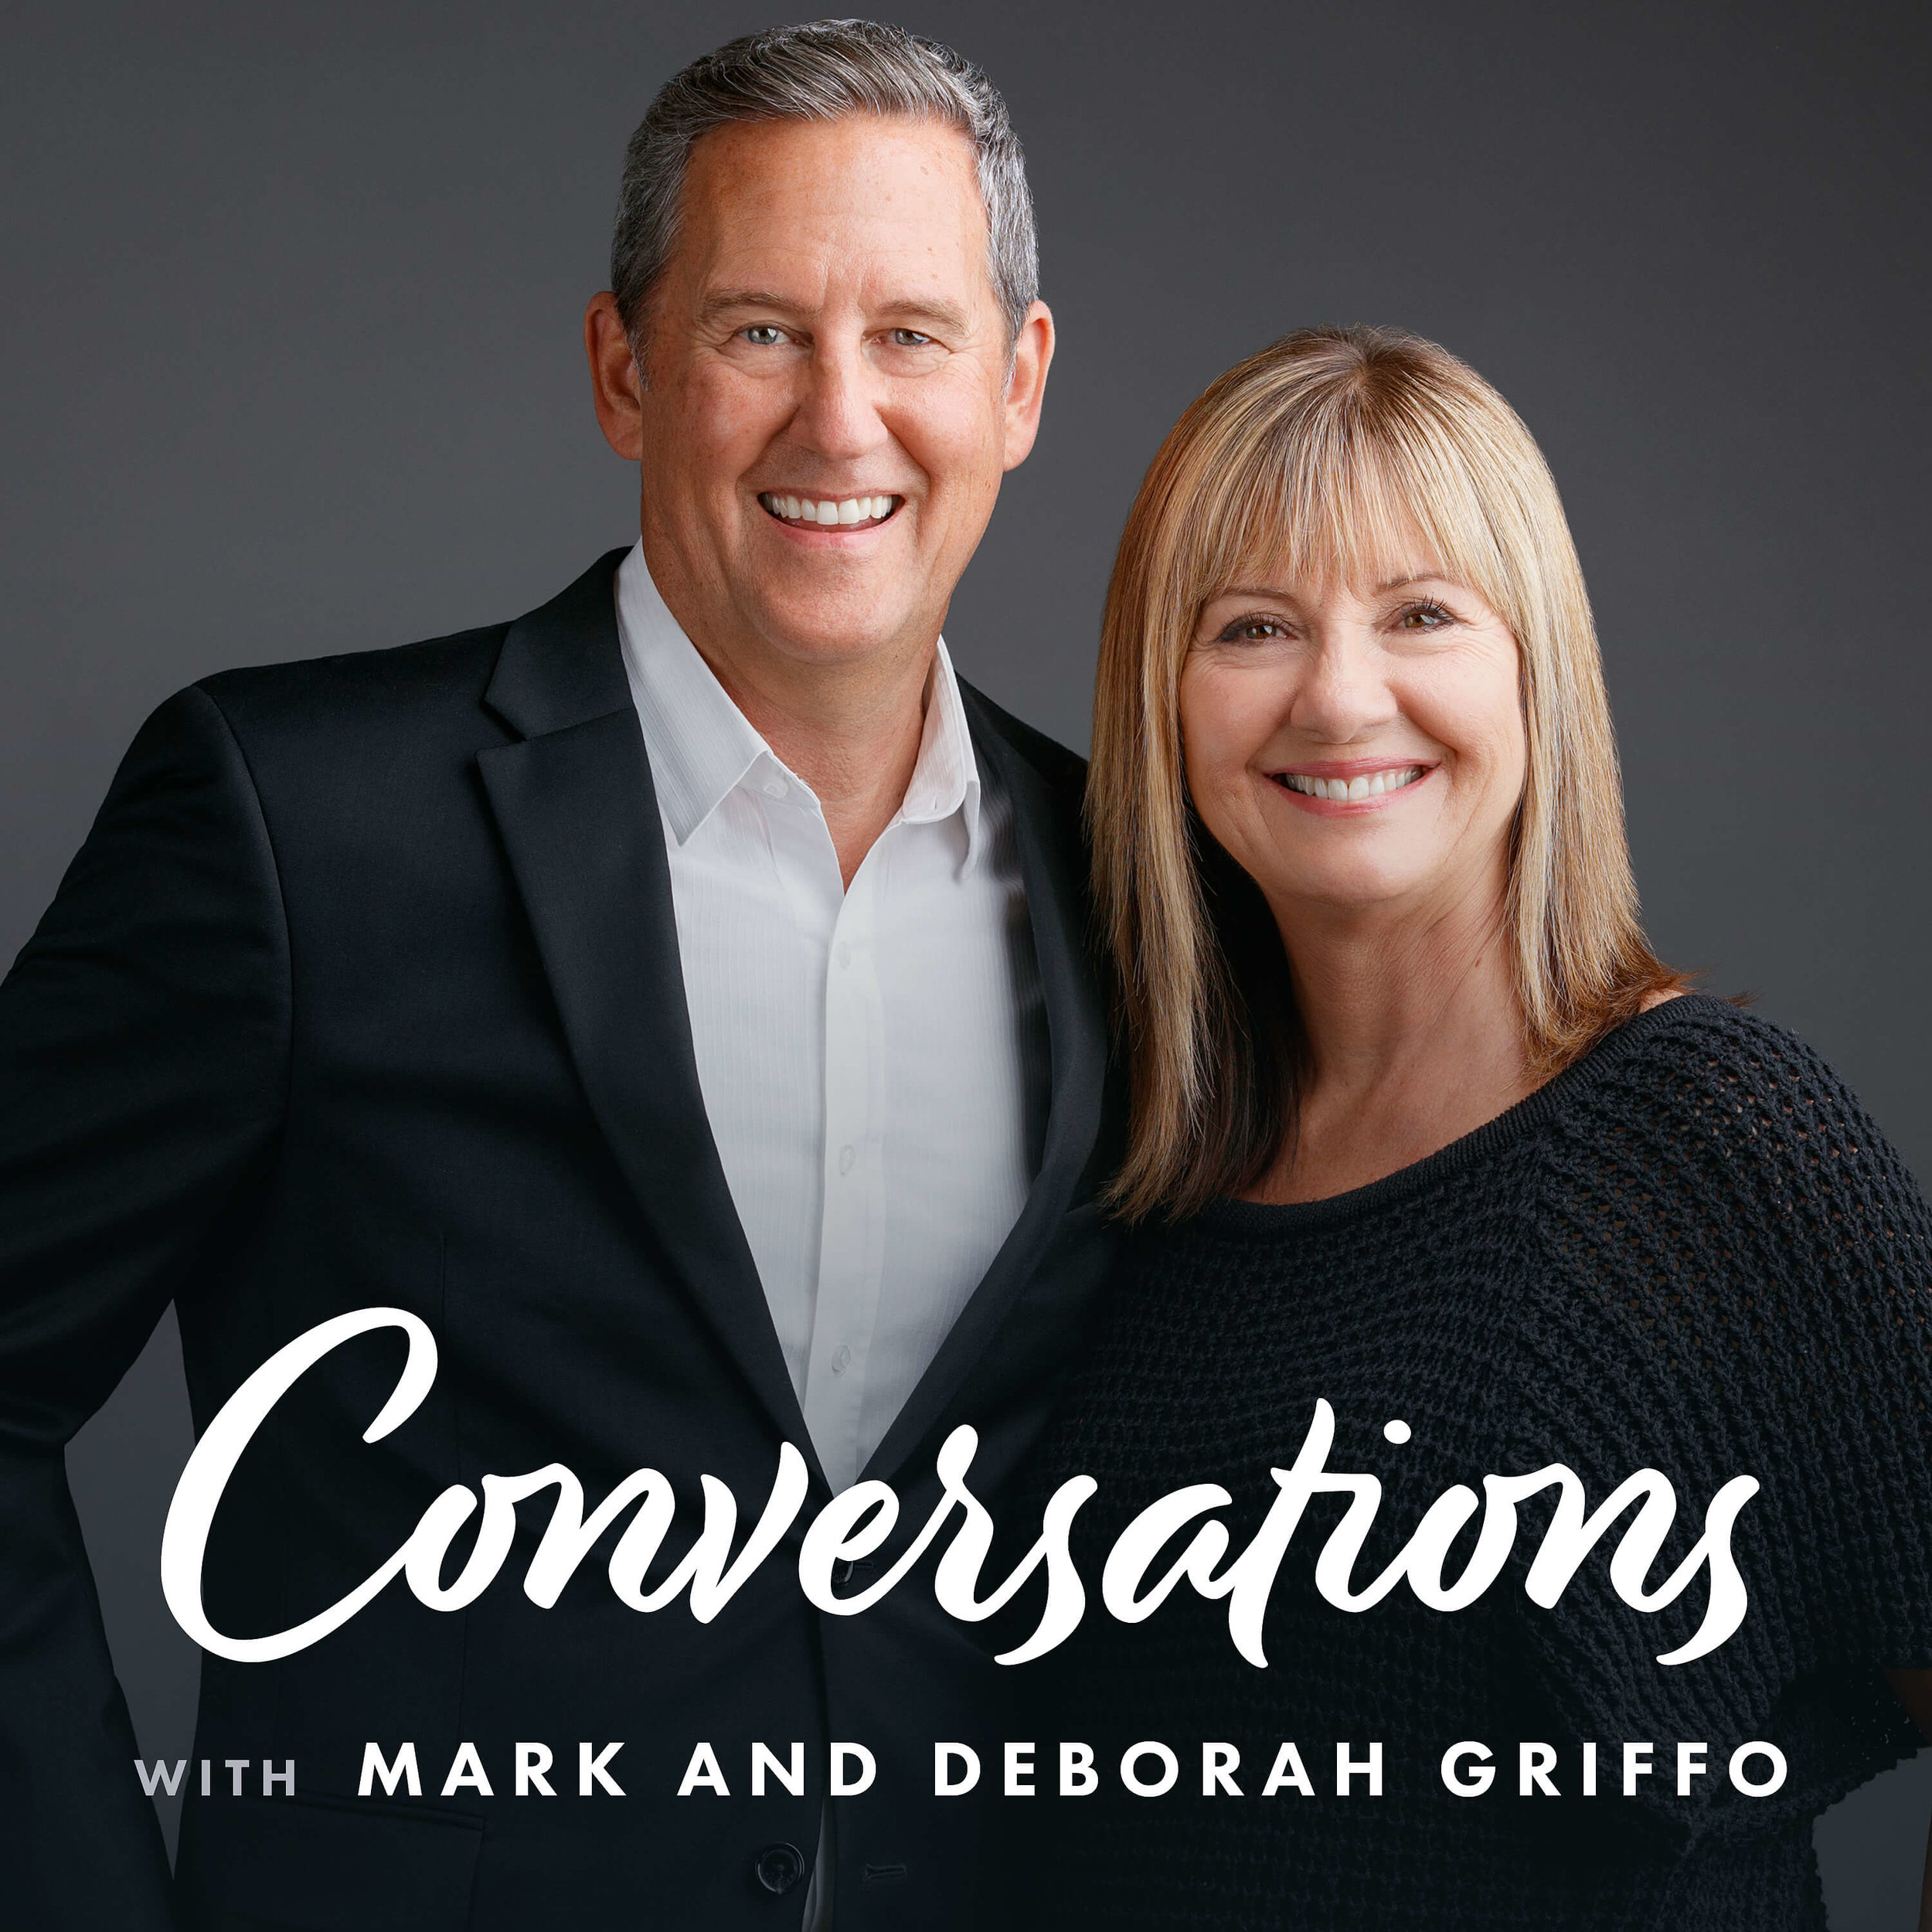 Conversations with Mark and Deborah Griffo